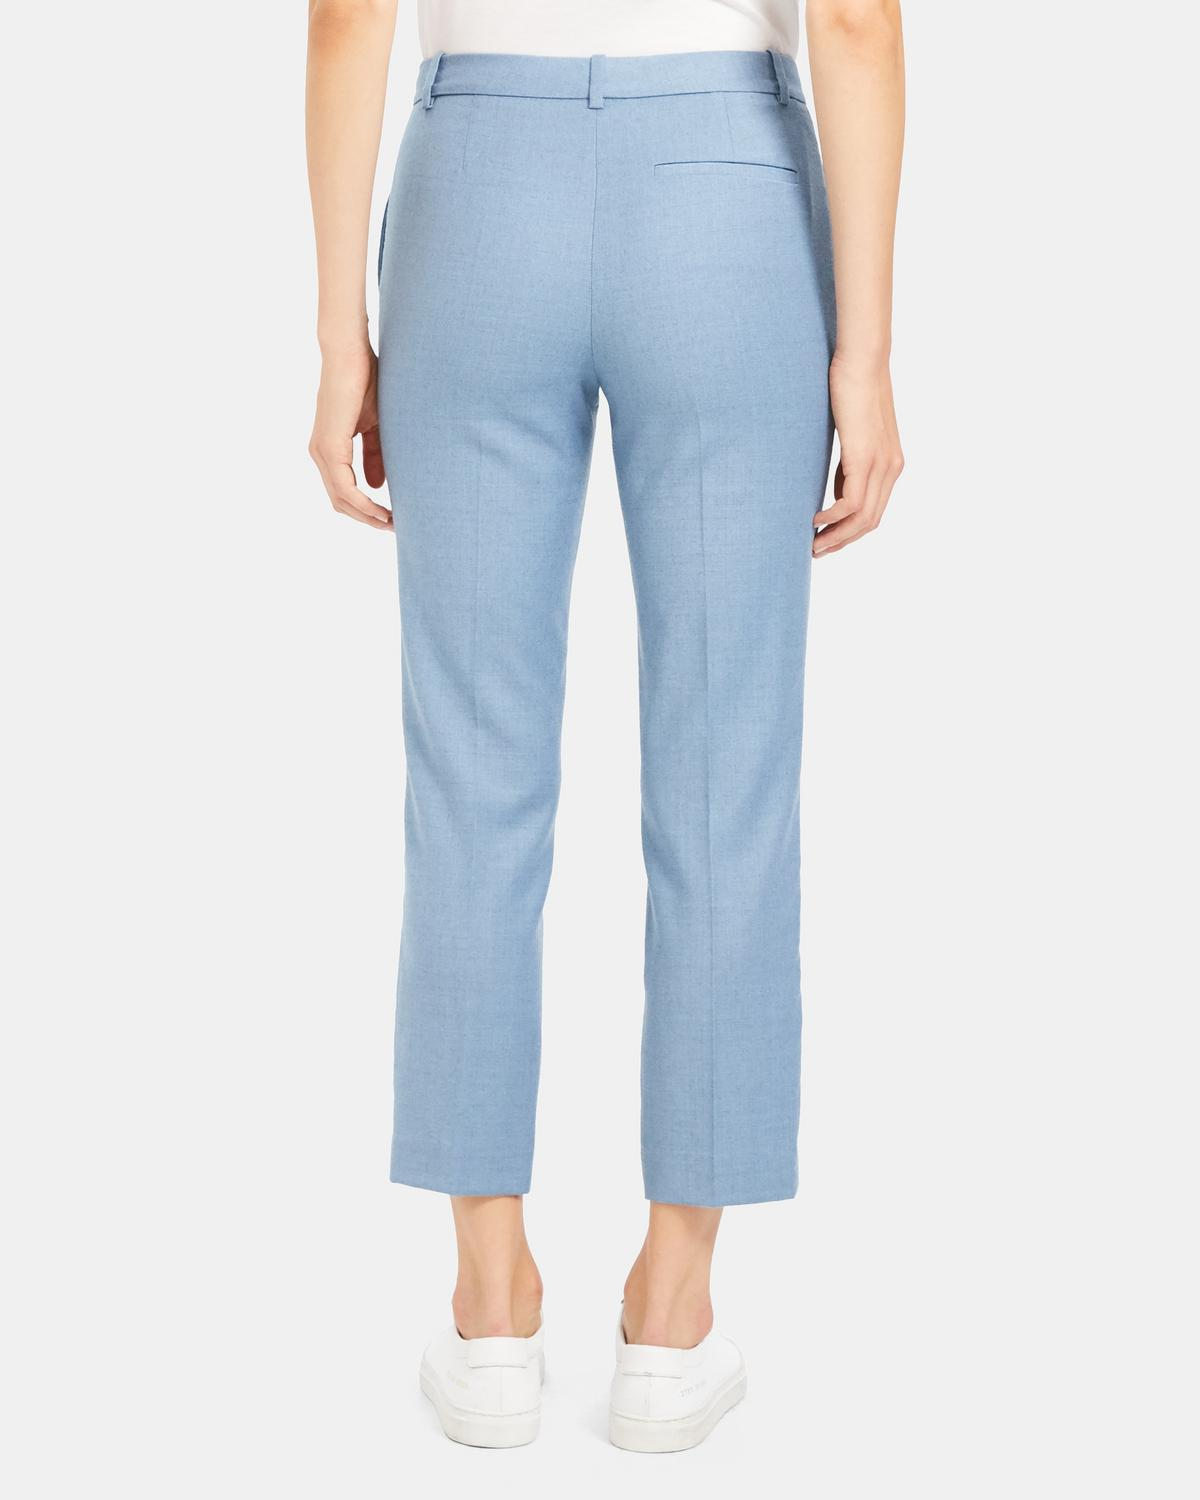 Treeca Pant in Sleek Flannel